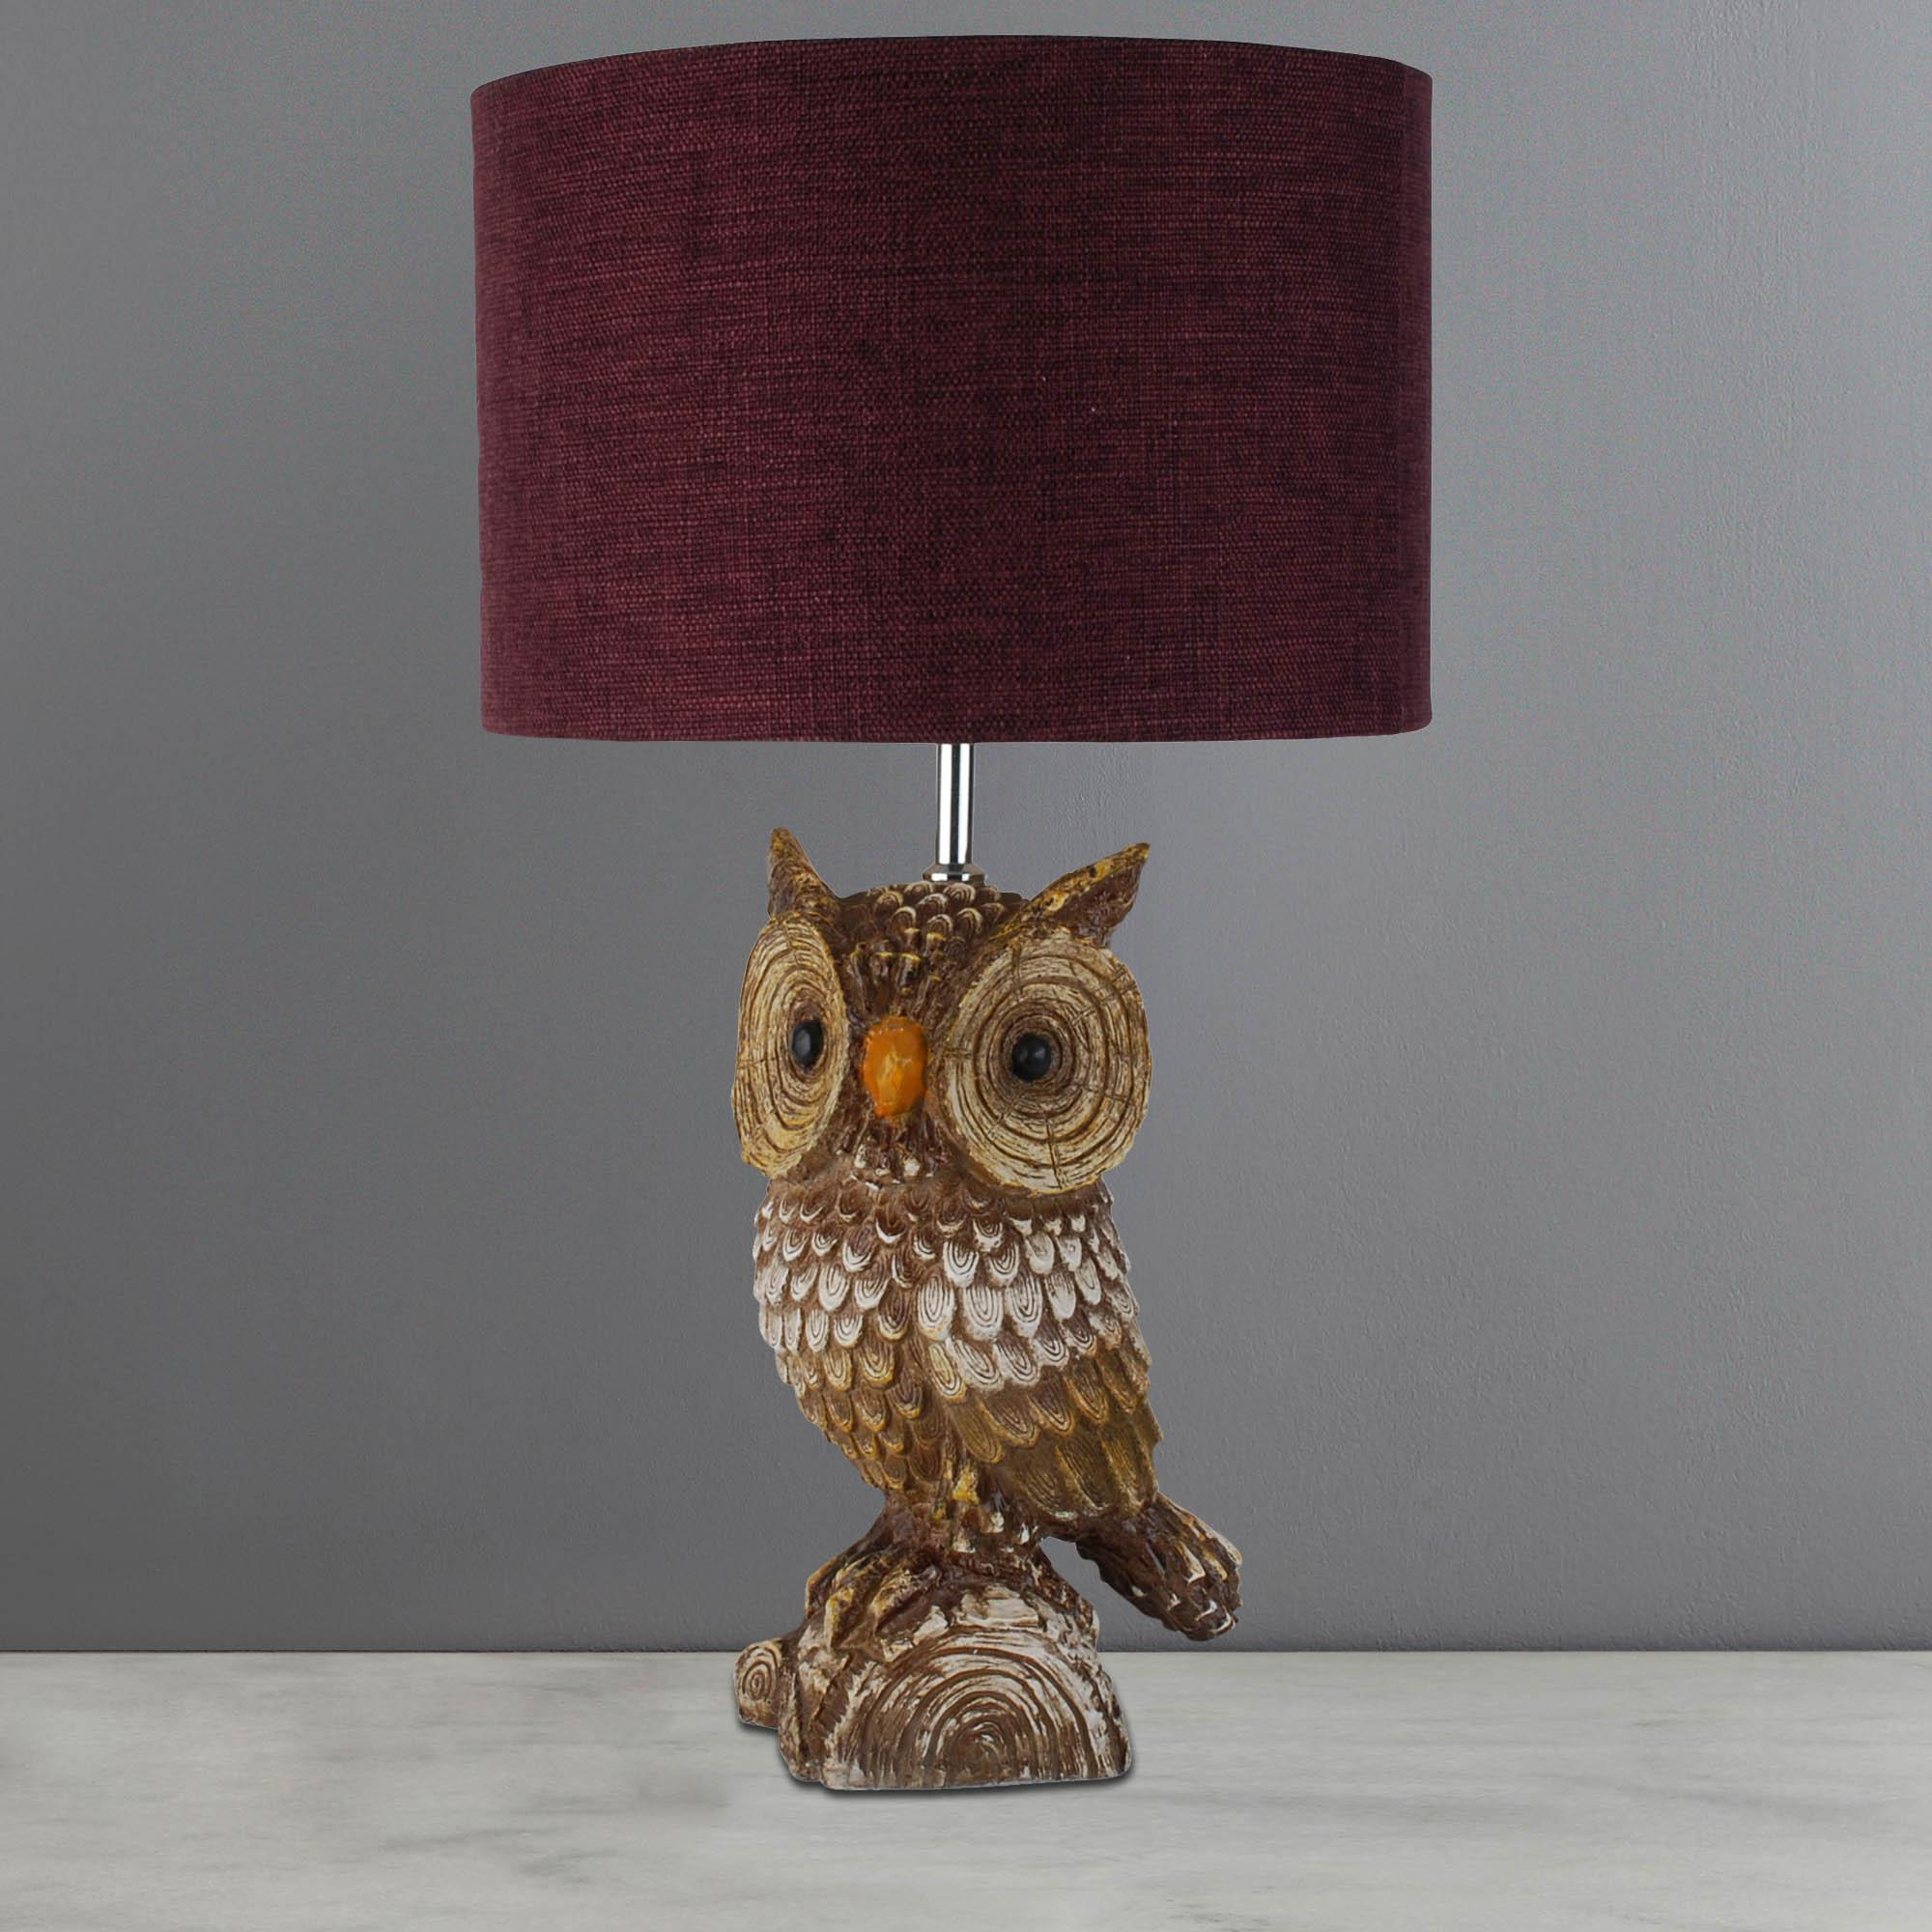 Owl Lamp capri rustic owl table lamp burgandy QYXULMC